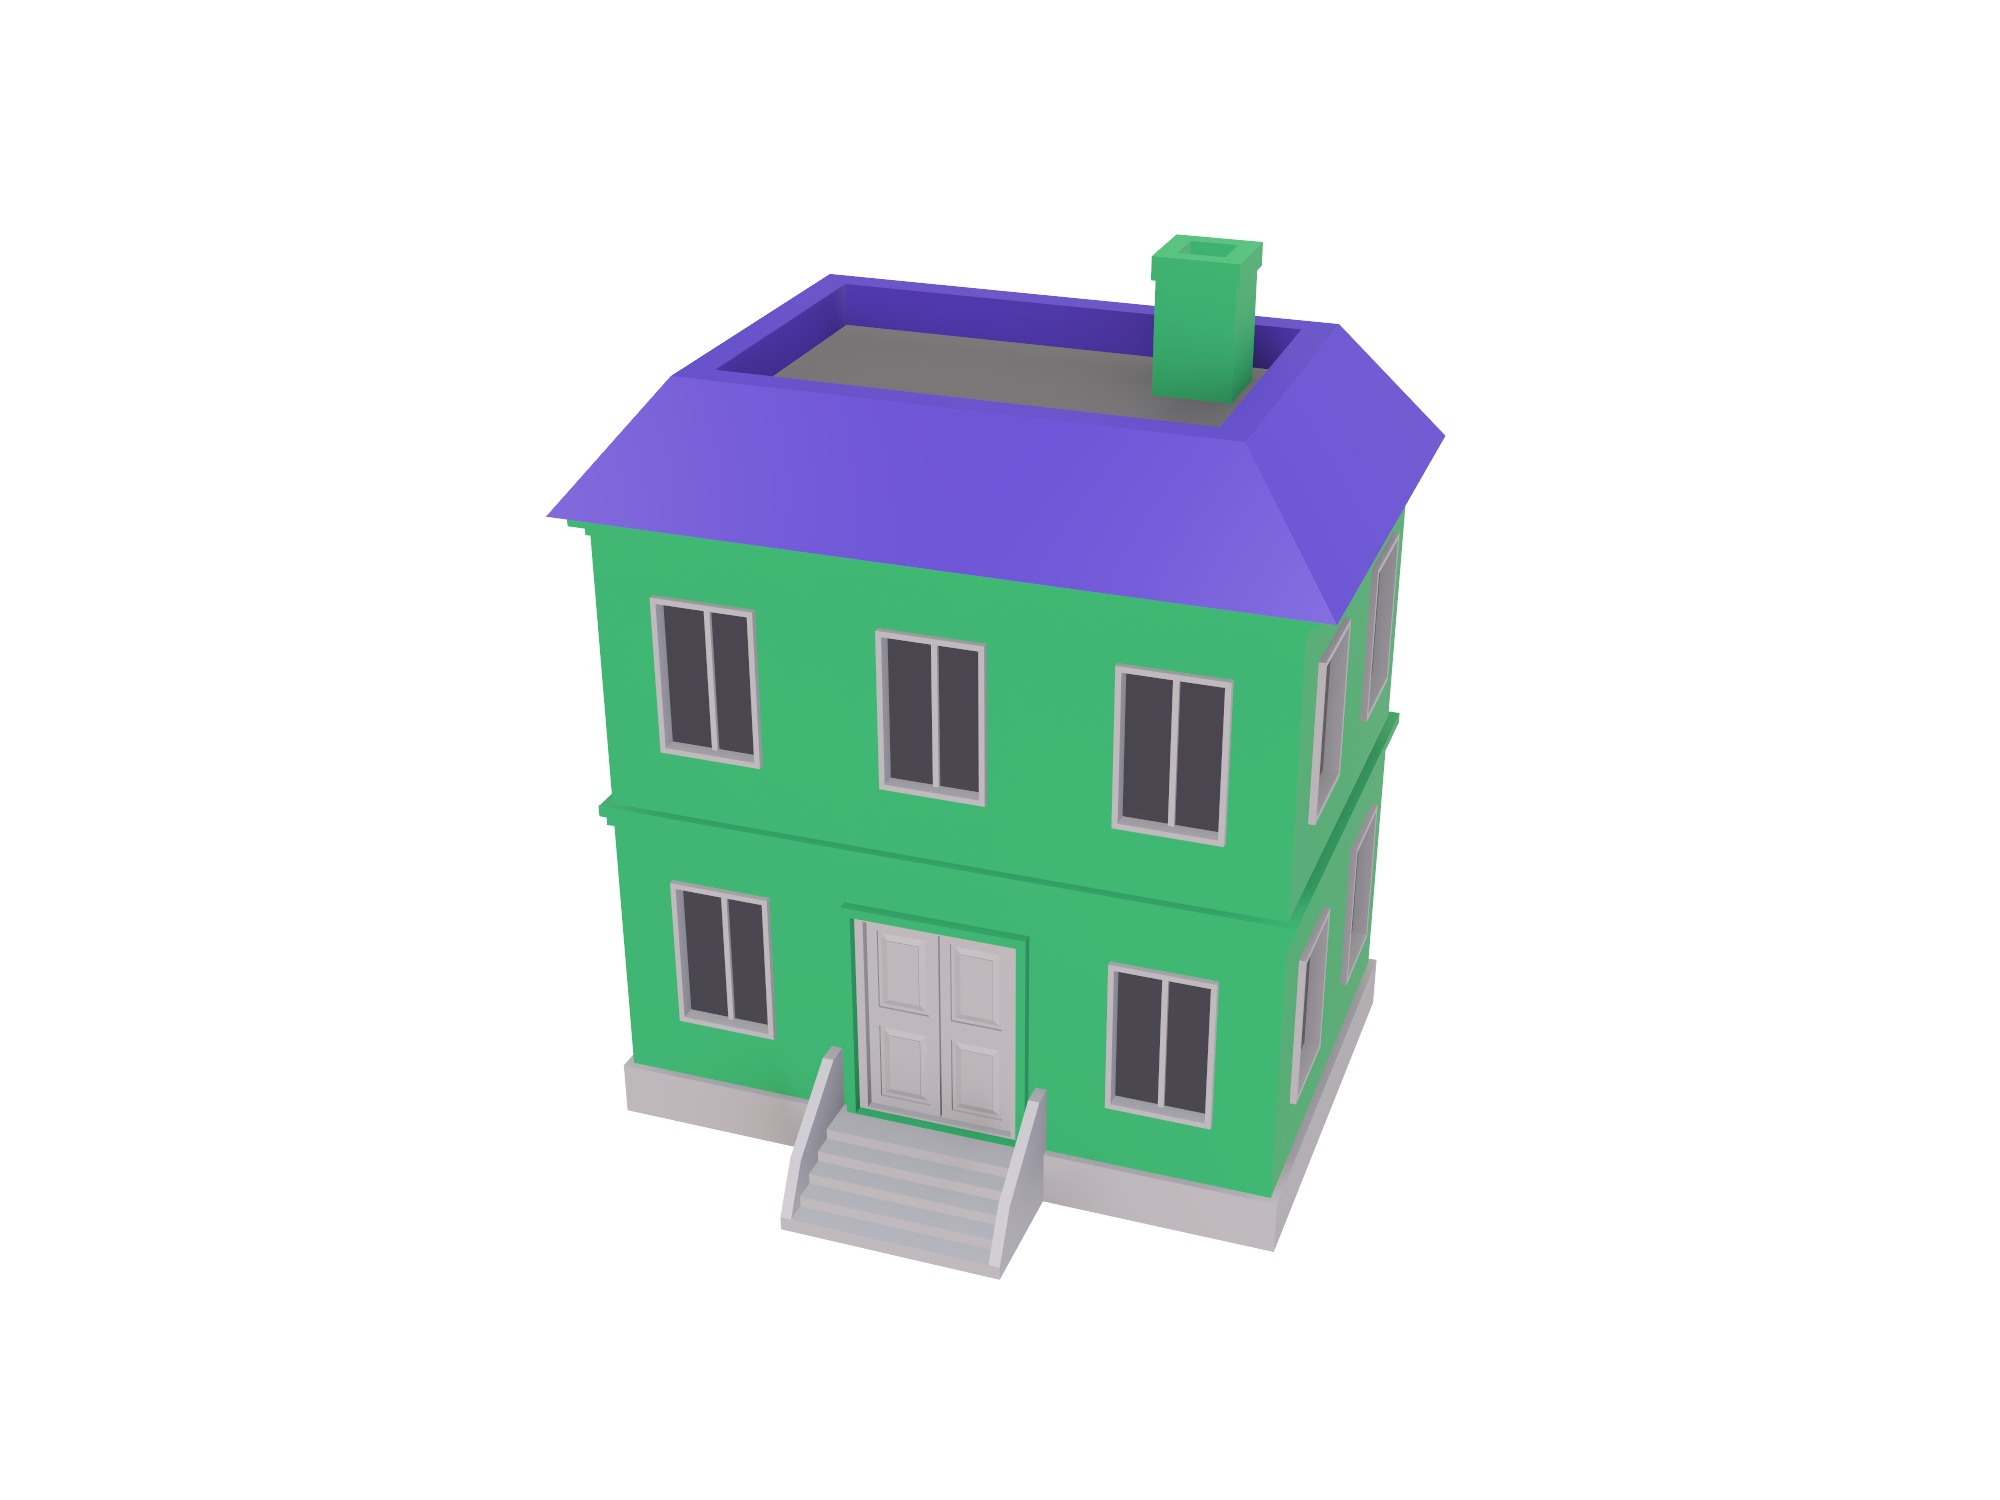 House - 3D design by assets Jun 4, 2018